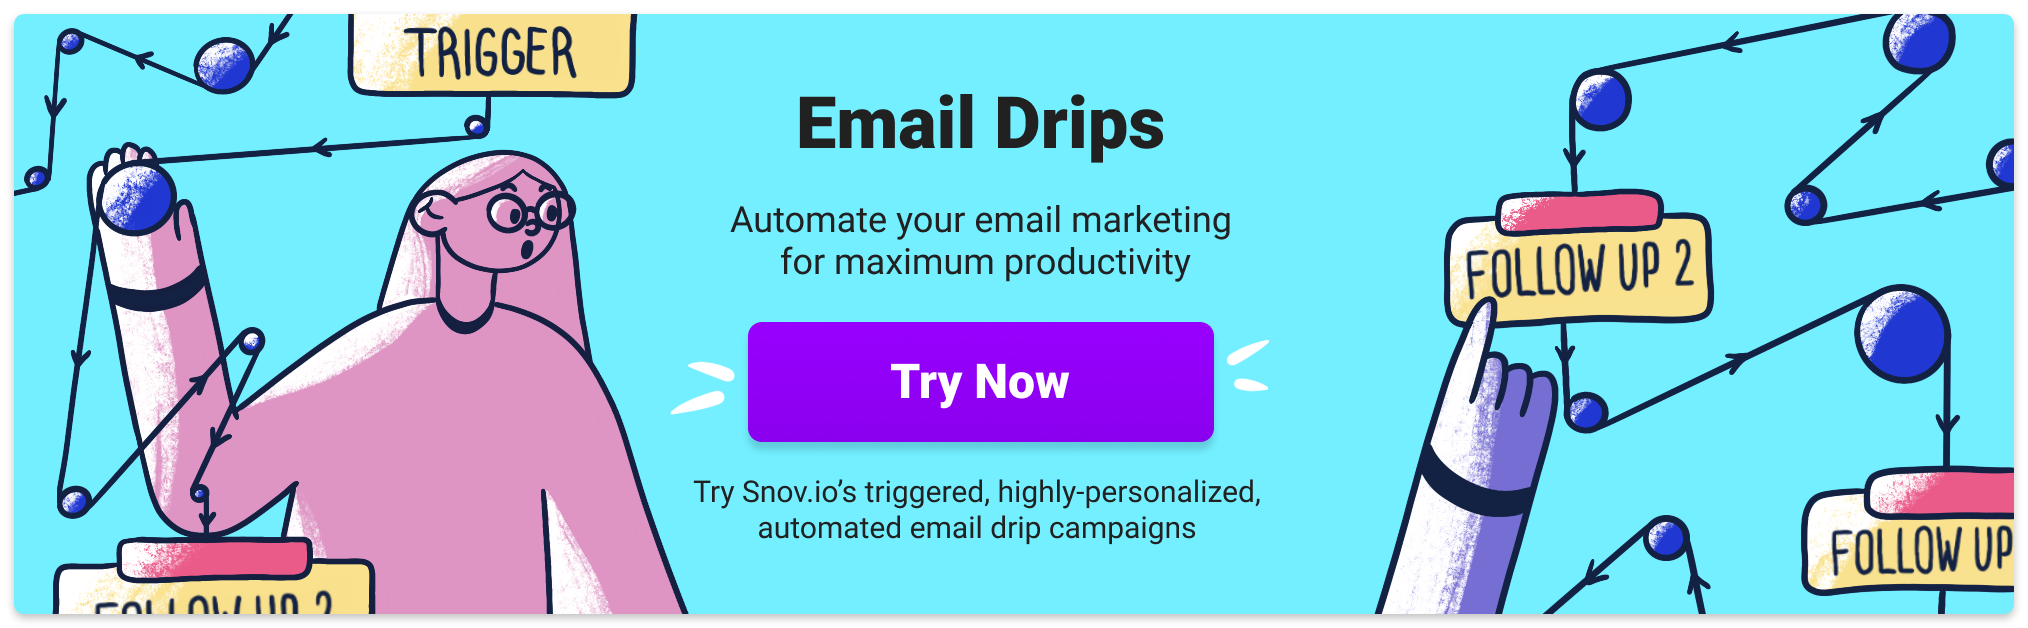 Email drip campaigns - a triggered email sender